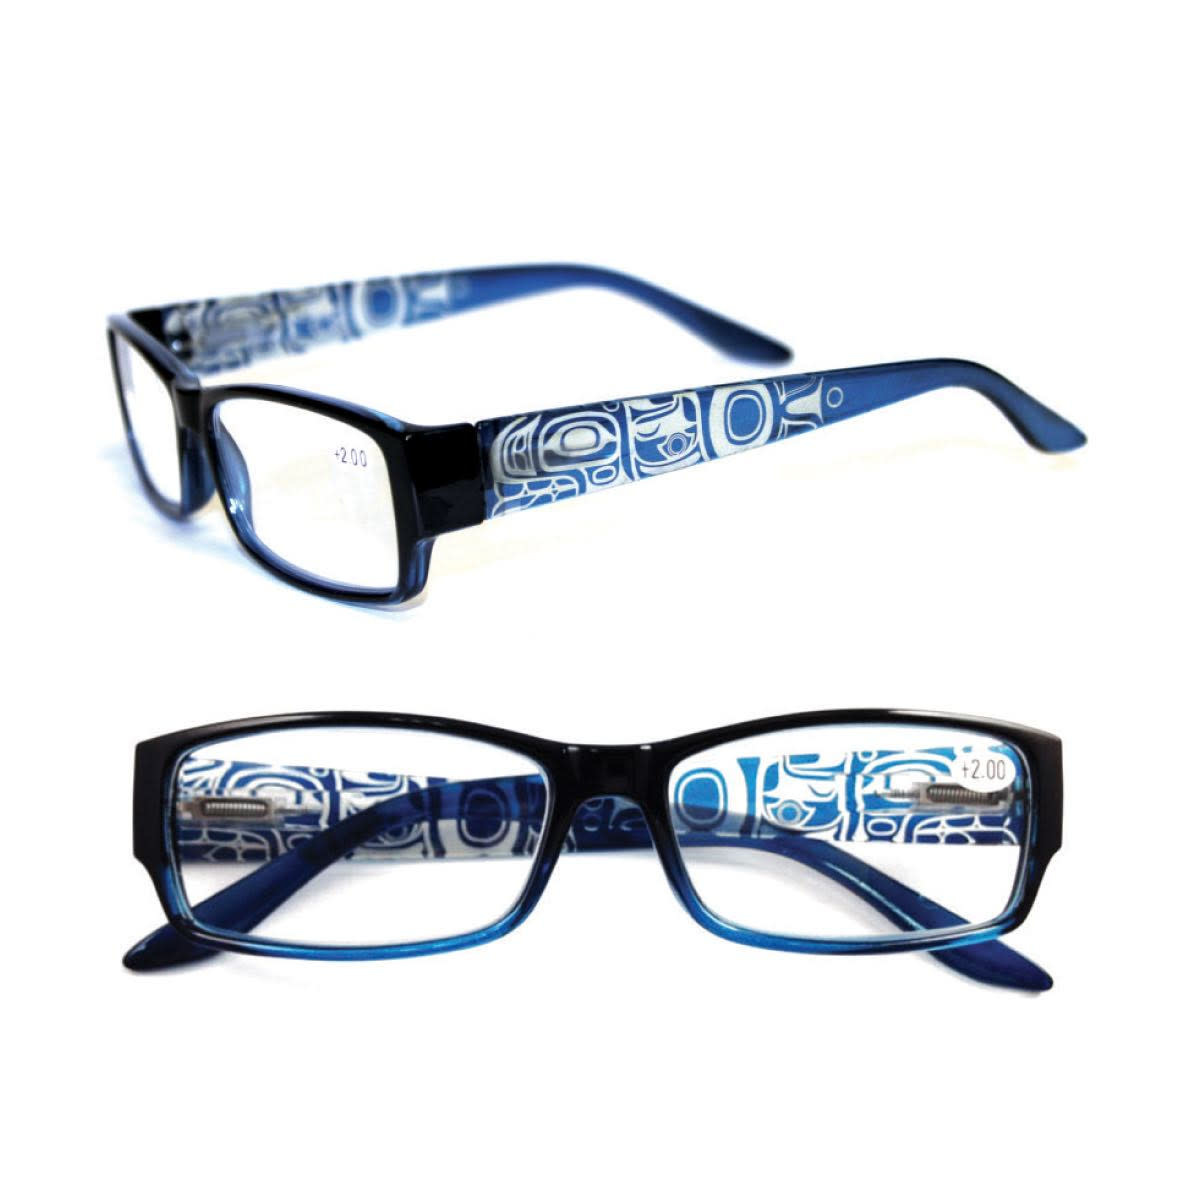 Adult Reading Glasses-5